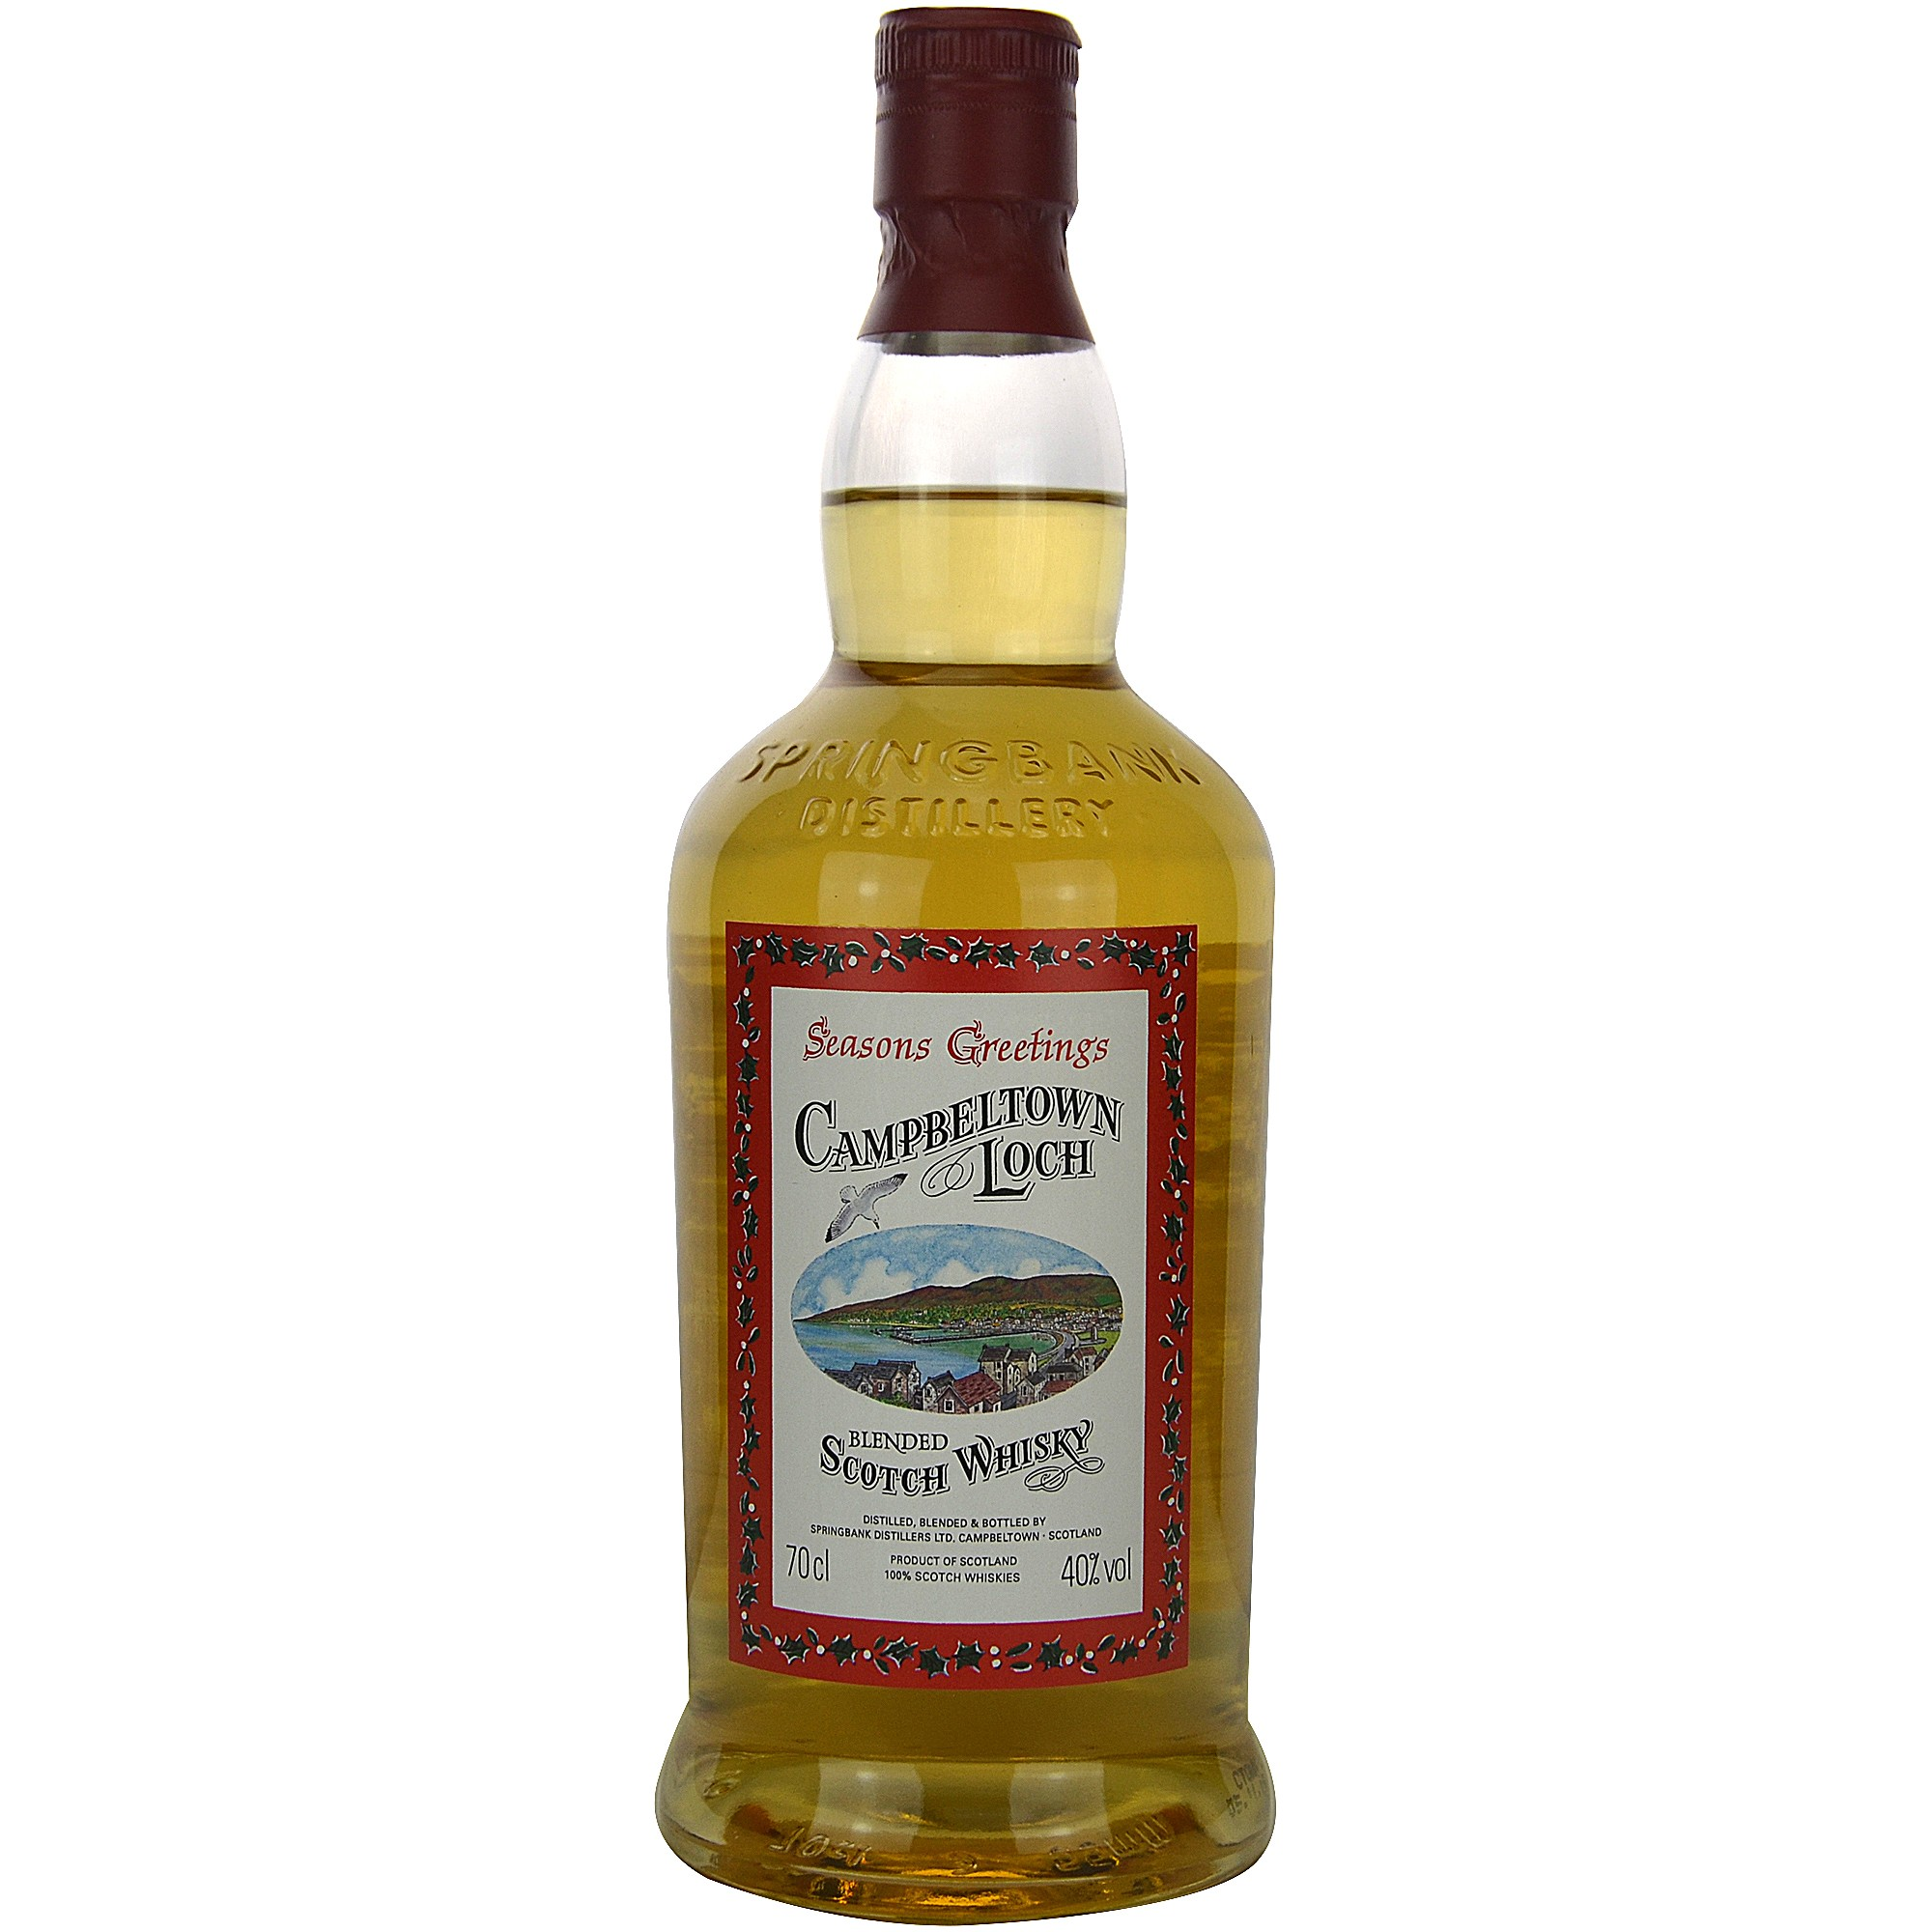 Campbeltown Loch Seasons Greetings Blended Scotch